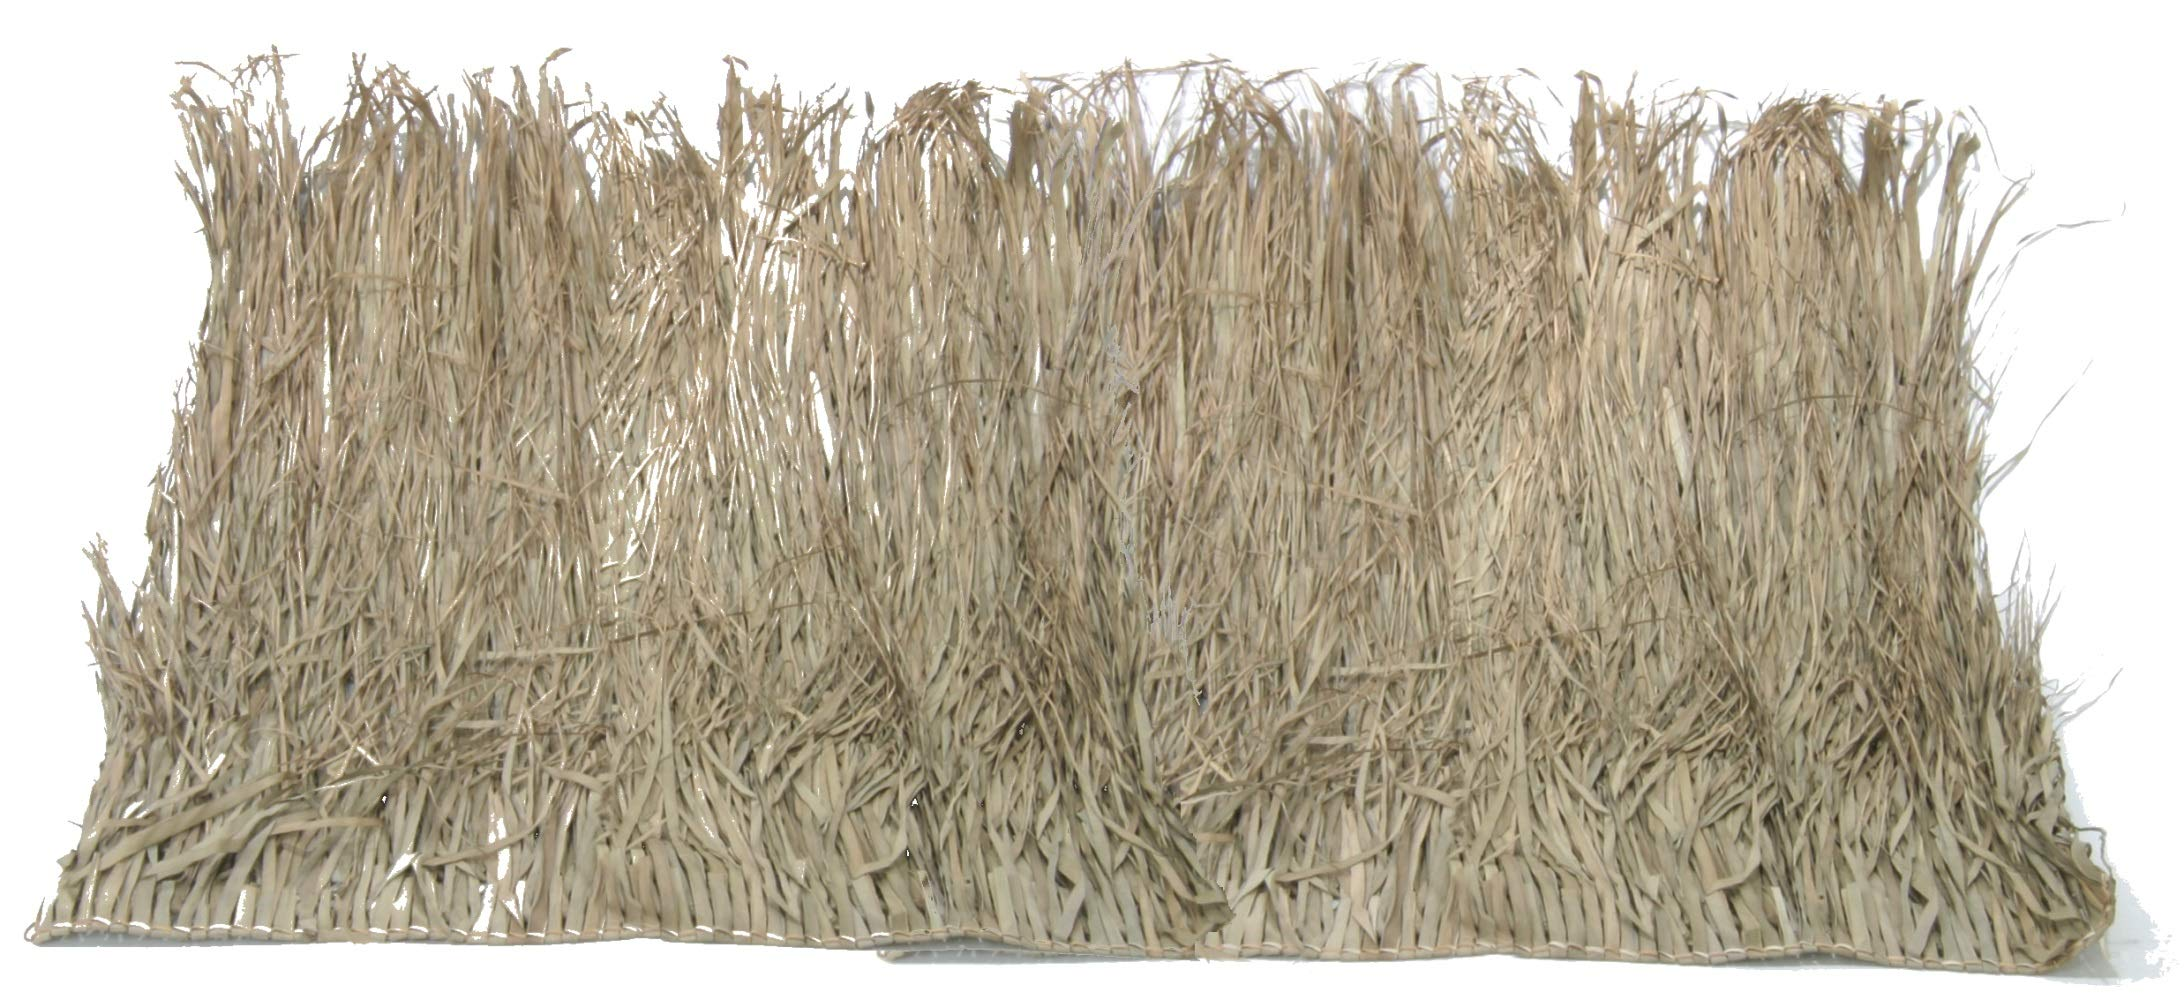 Wildfowler Natural Grass Mat, Hay, 4' x 8' Feet Conversion by Wildfowler